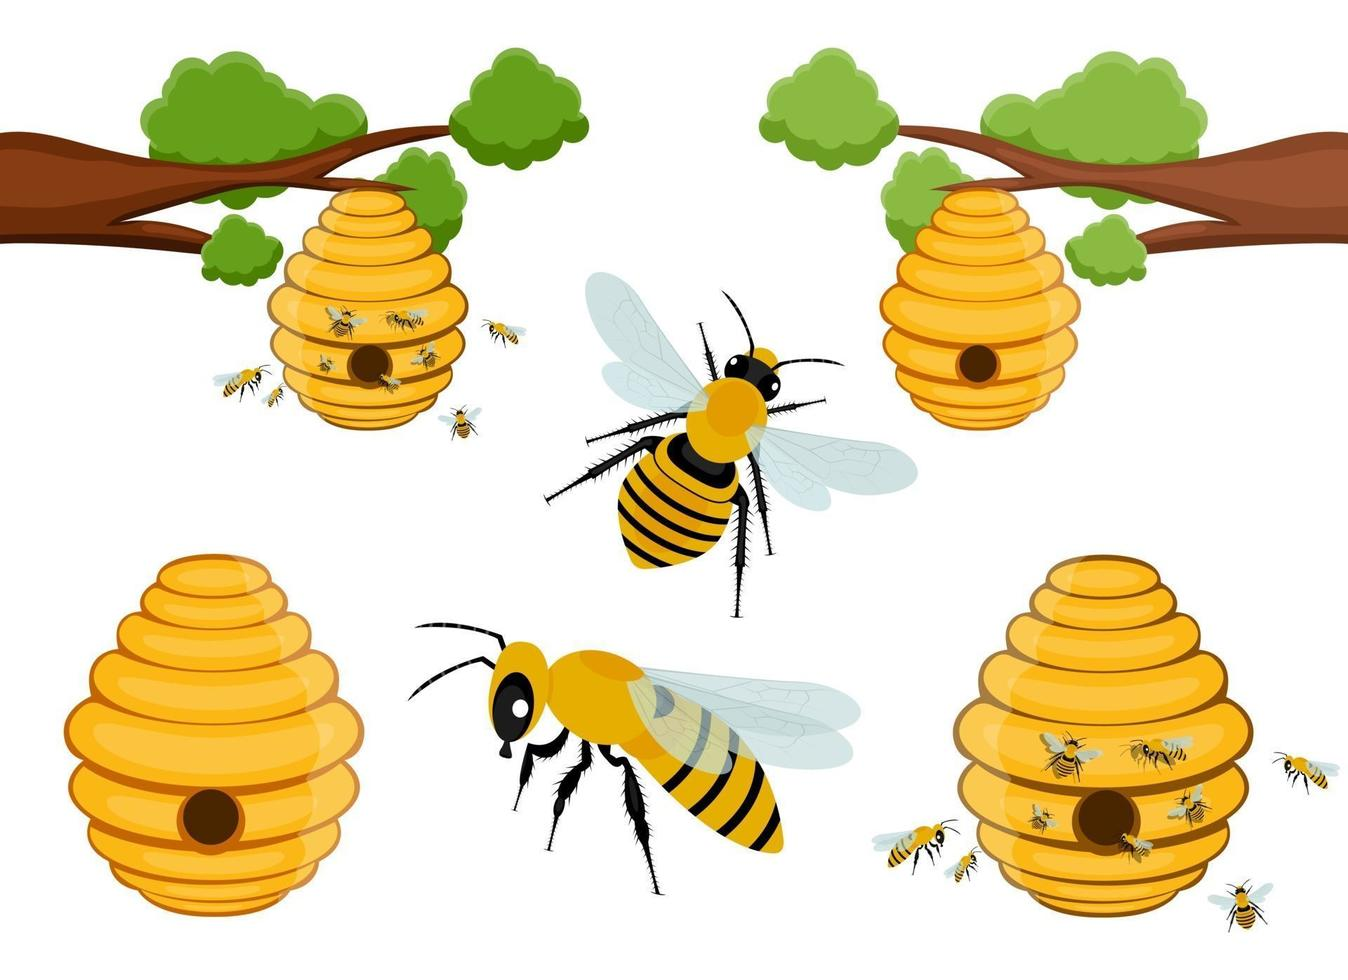 Bee tree hive vector design illustration set isolated on white background